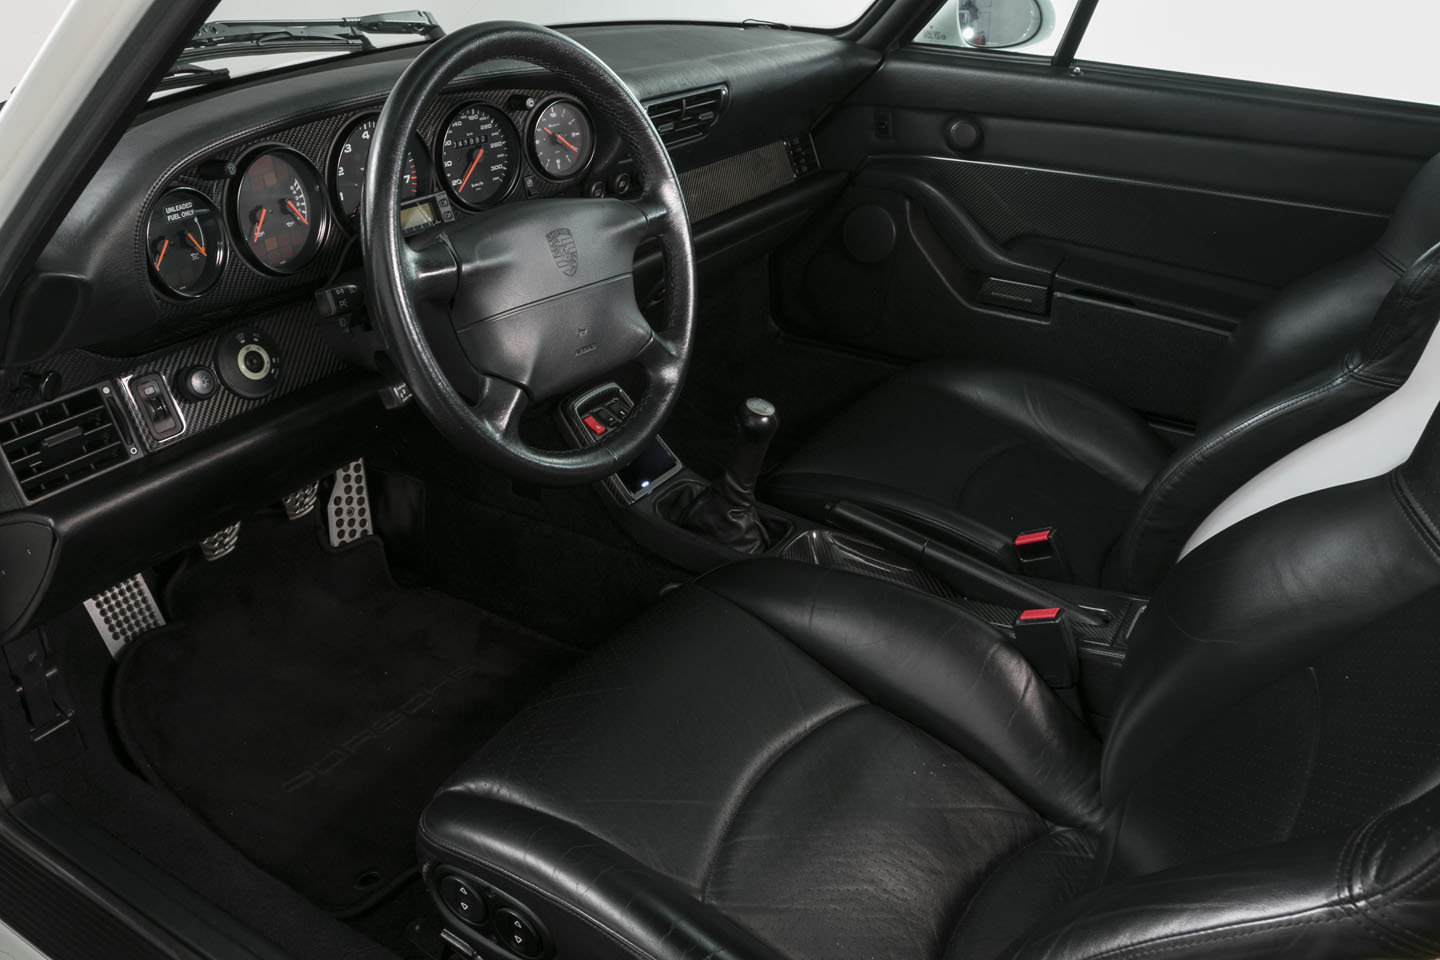 1996 Porsche 993 TURBO FACTORY X50/X79 PACKS !! LHD For Sale (picture 4 of 6)